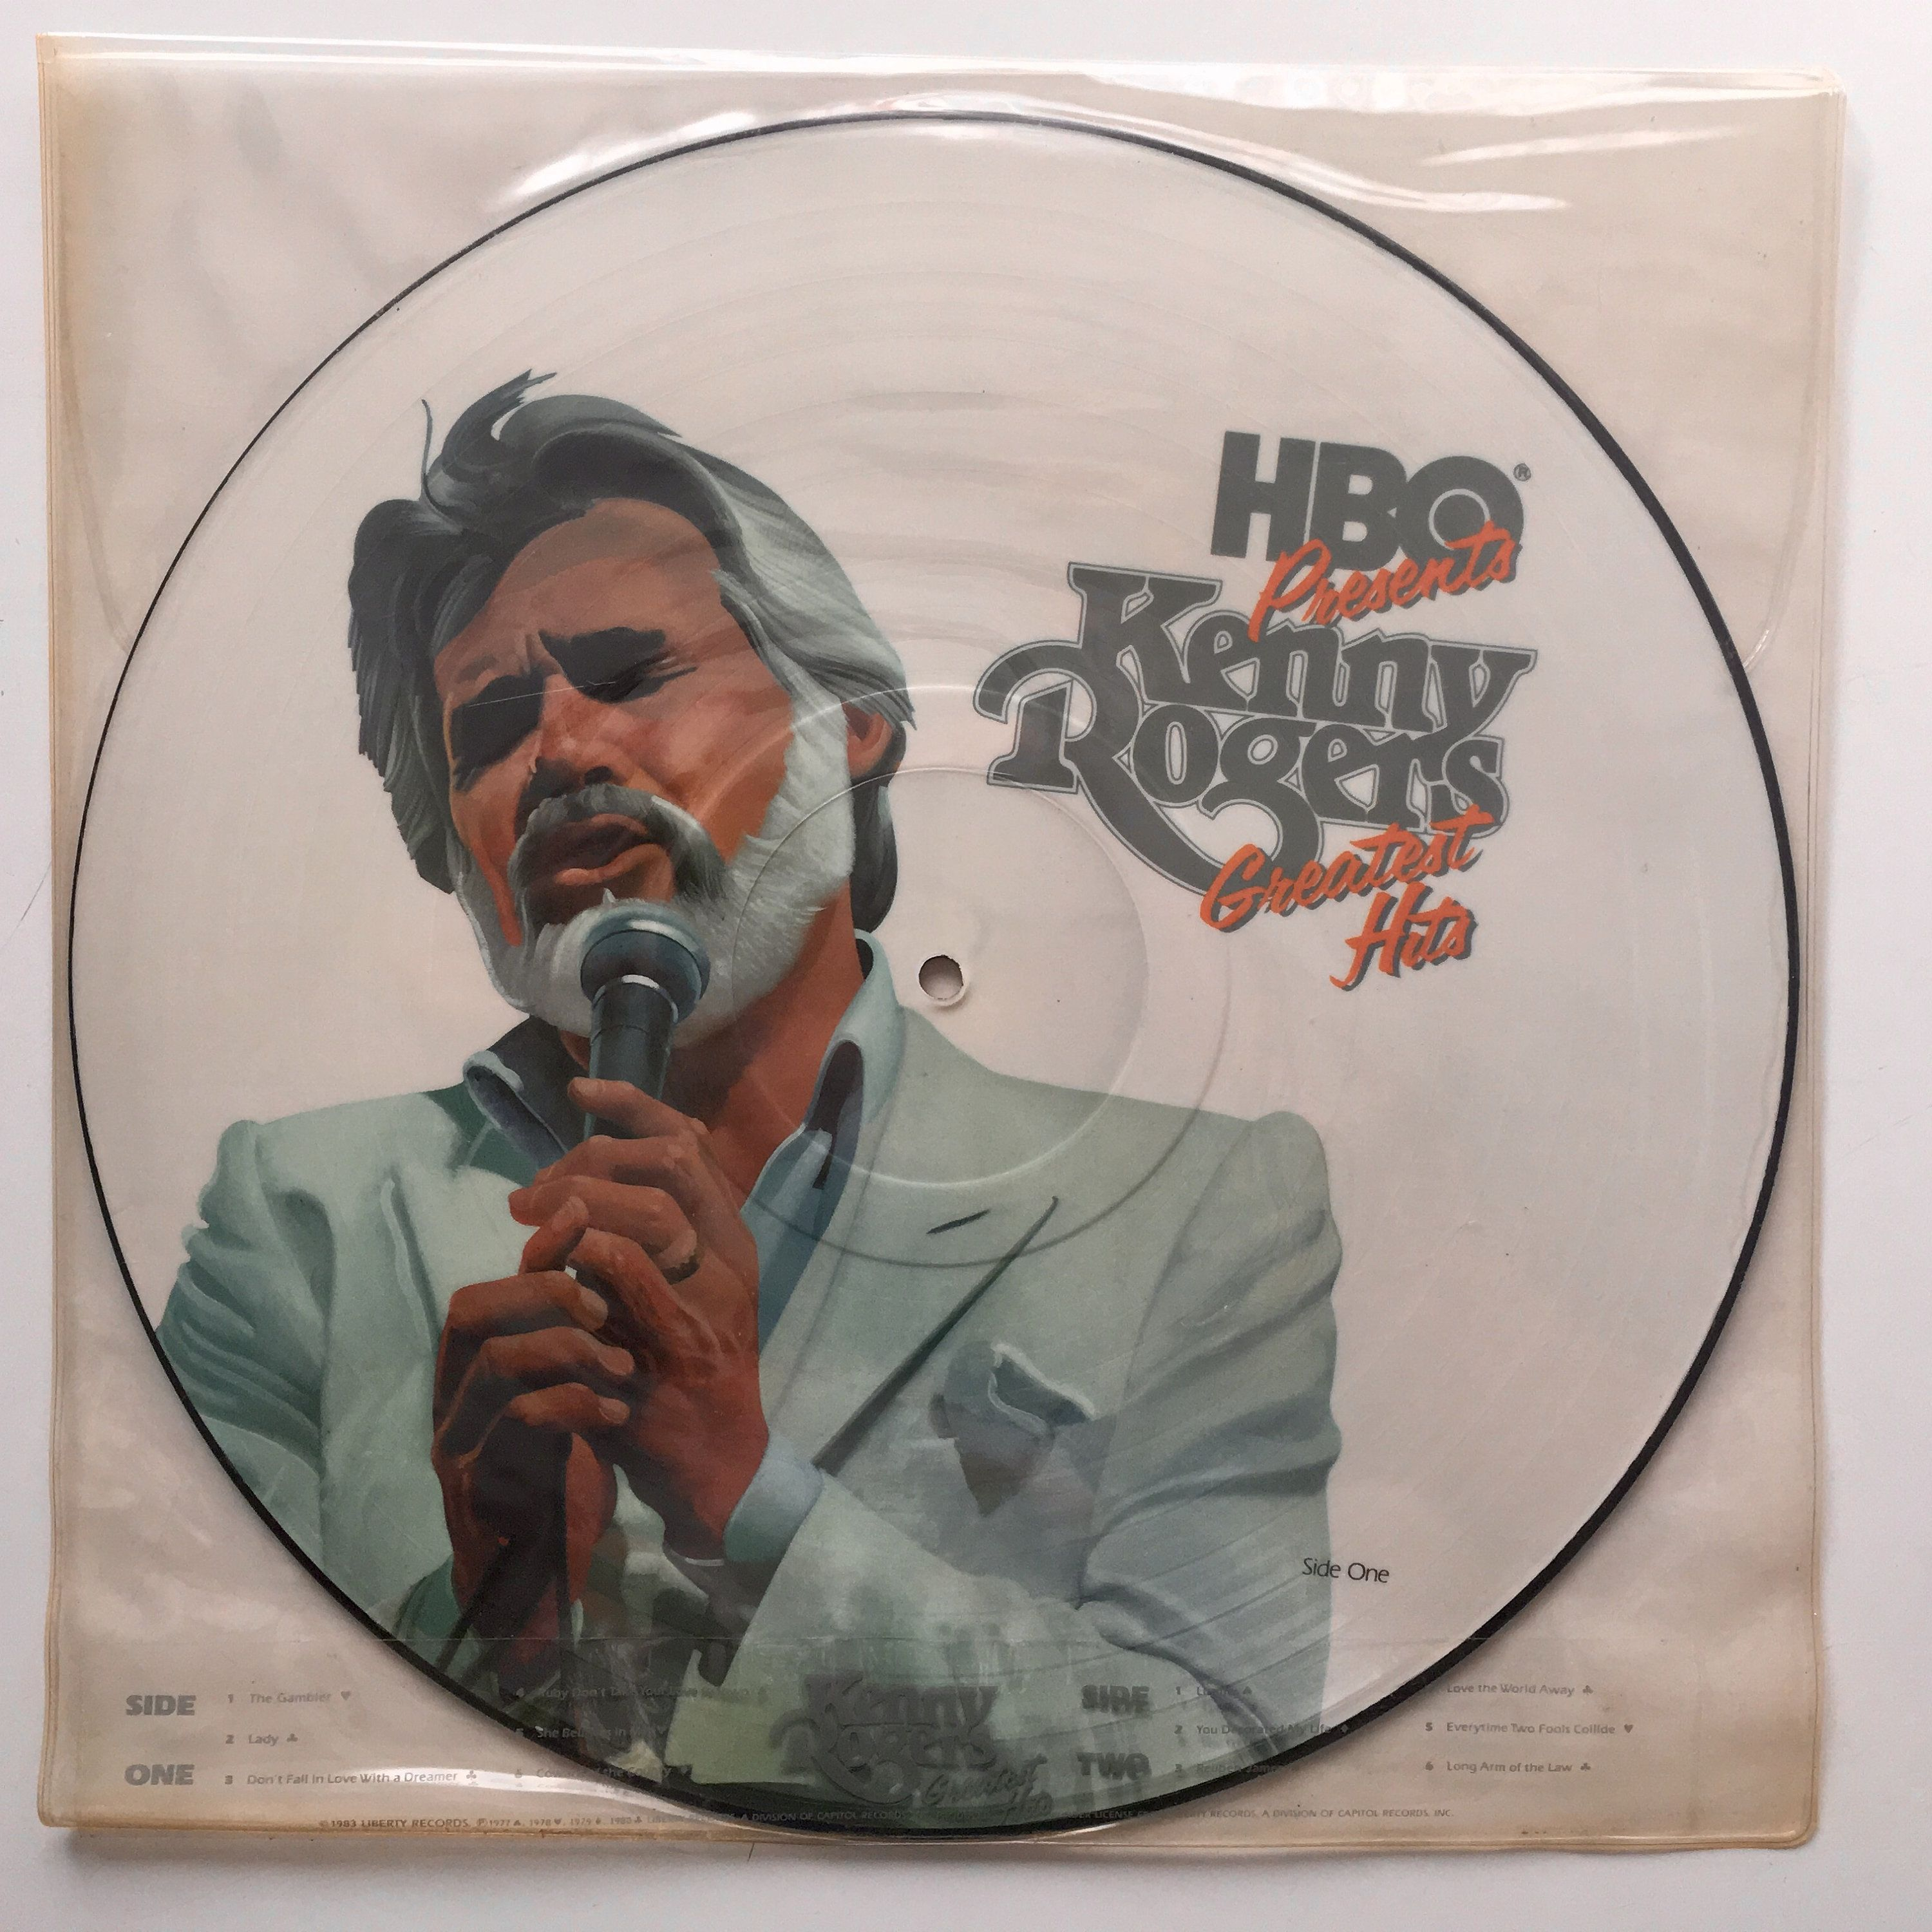 Kenny Rogers - HBO Presents Kenny Rogers Greatest Hits ...